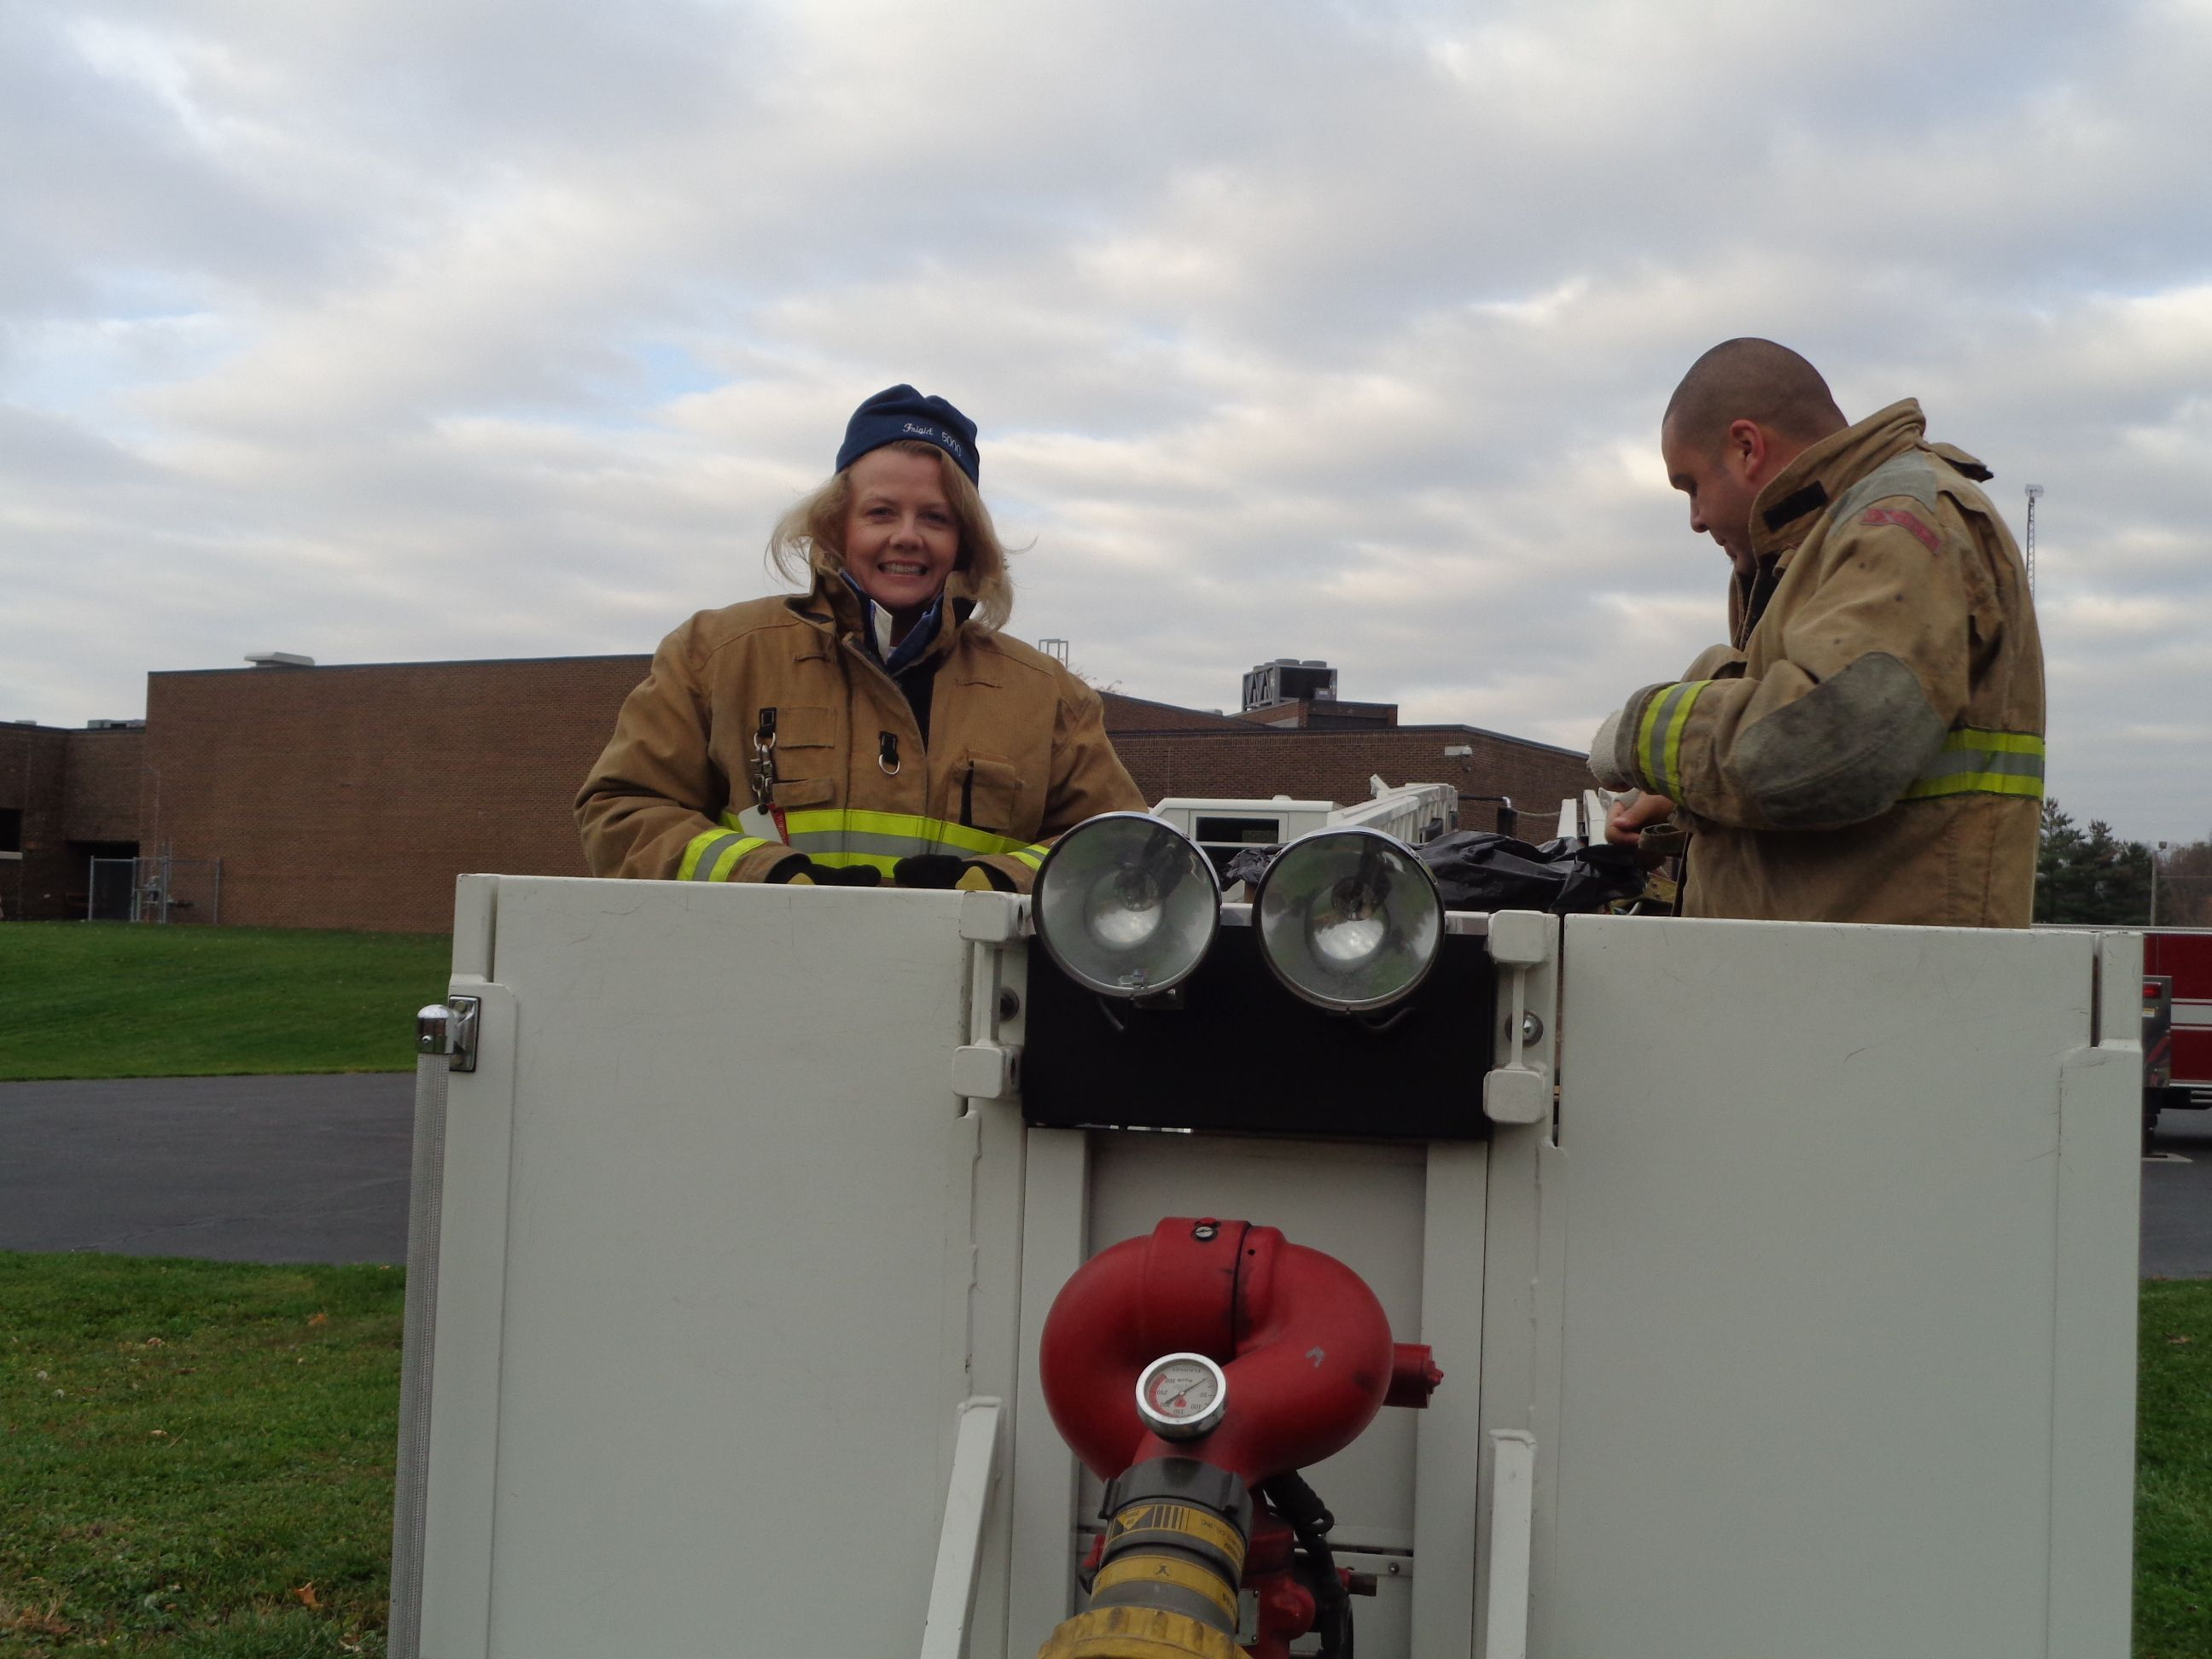 """The entire student body came out to watch the show. Each of the 4th grade classroom teachers; Miss Gustafson, Ms. Herbert and Mrs. Dreibilis climbed into the ladder bucket with firefighter Mike Jernstrom and about a half dozen cardboard boxes packed with the precious pumpkin cargo. The students then counted down and chanted """"drop it, drop it."""" One at a time the containers were dropped over the side of the bucket and landed forcibly on the playground. #WDAPlymouth #PlymouthIndiana"""